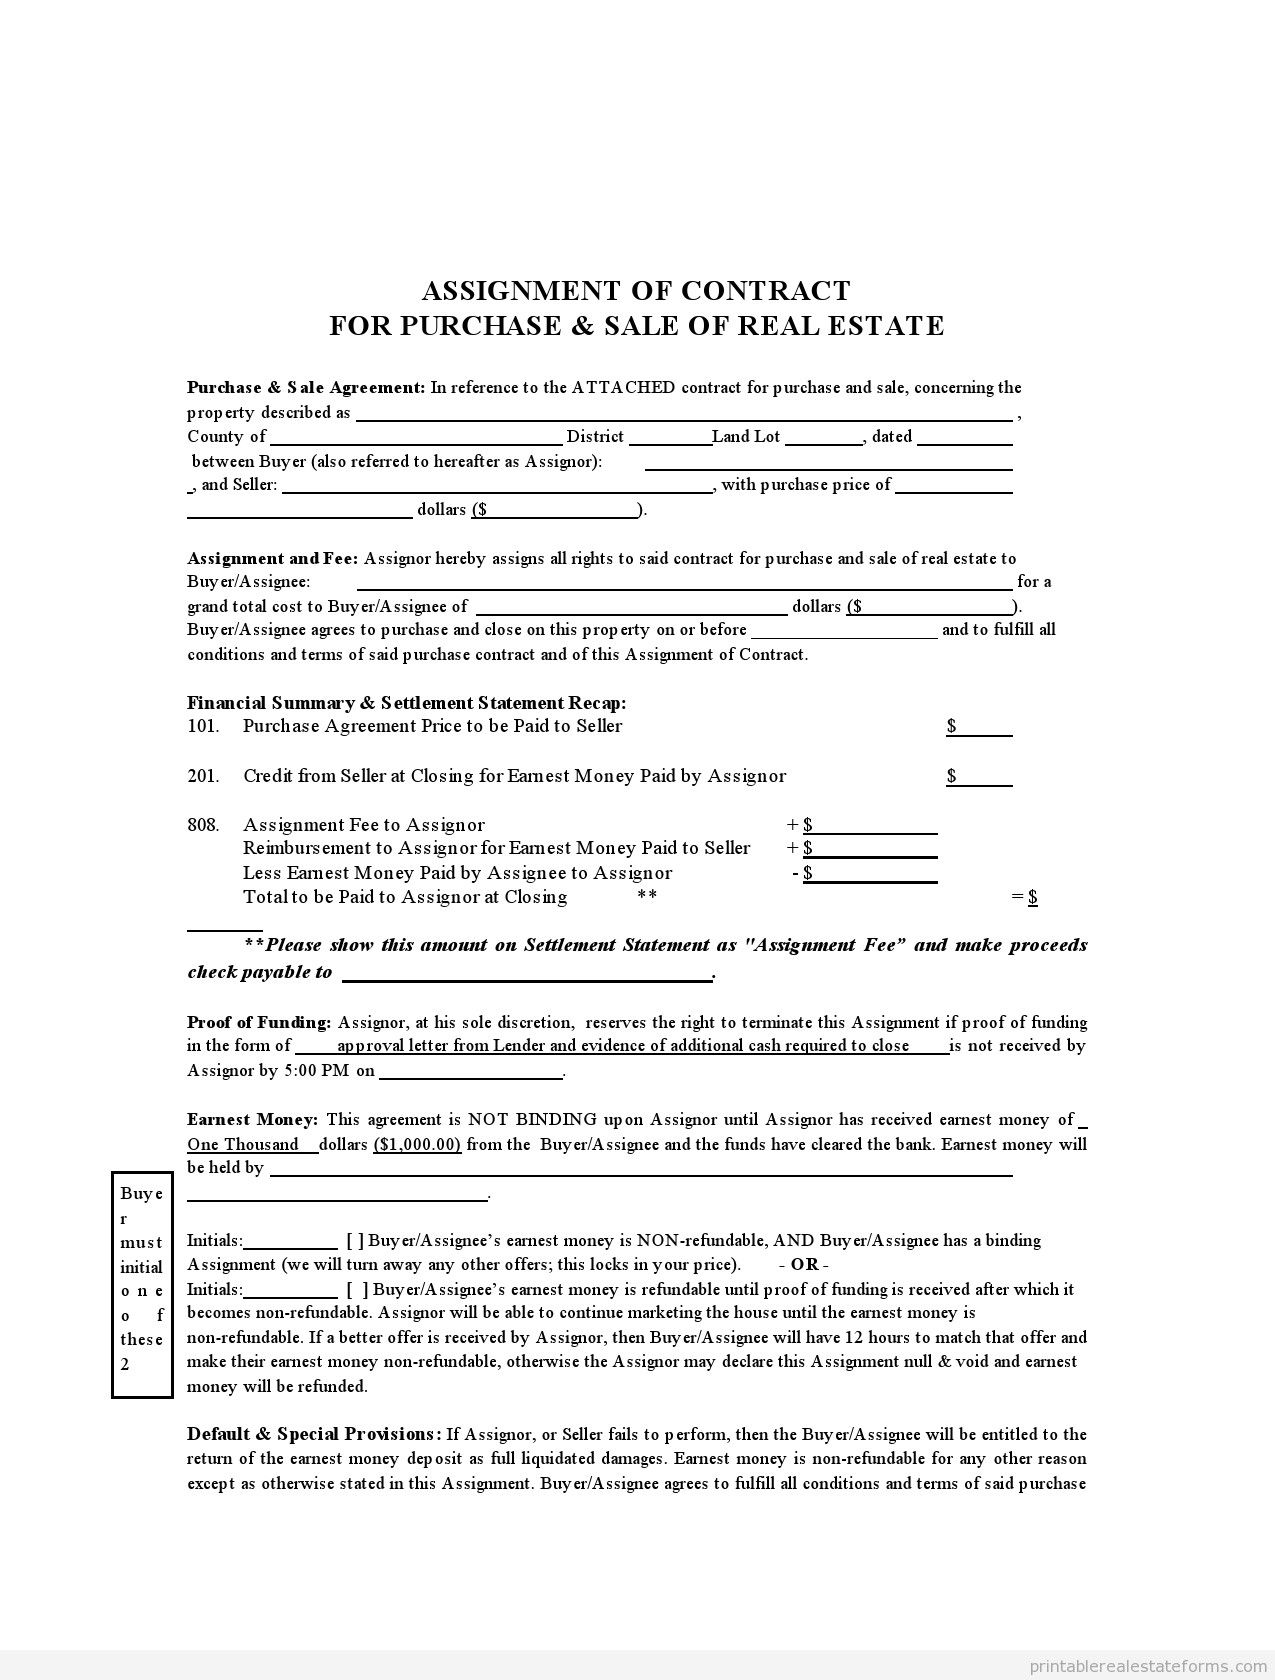 Assignment Of Contract Form Fresh Free Assignment Contract Form Real Estate Sample Real Estate Forms Real Estate Contract Wholesale Real Estate